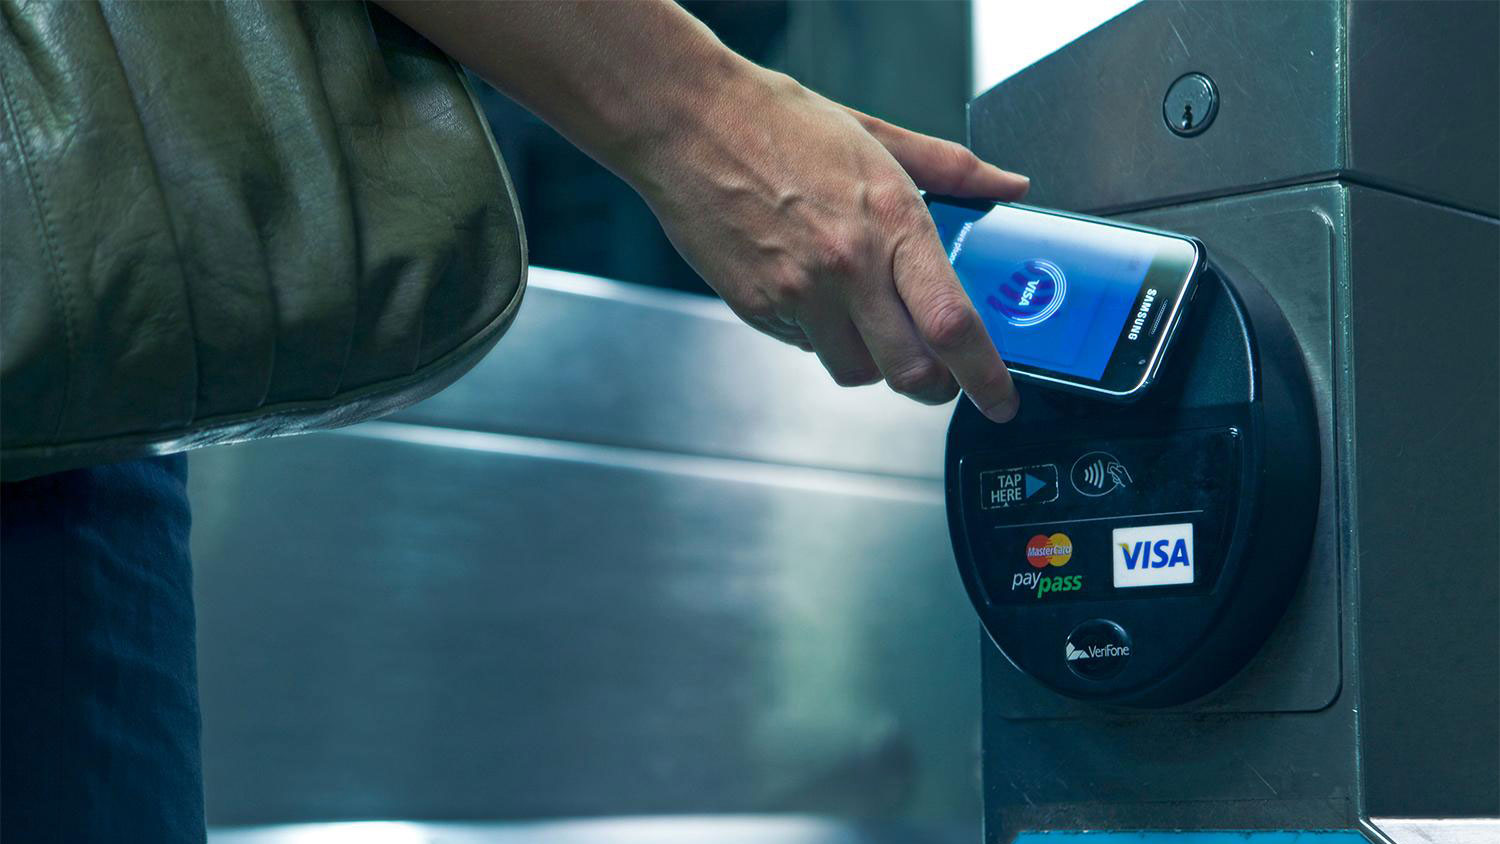 Samsung Pay Rewards gives users points for mobile payments